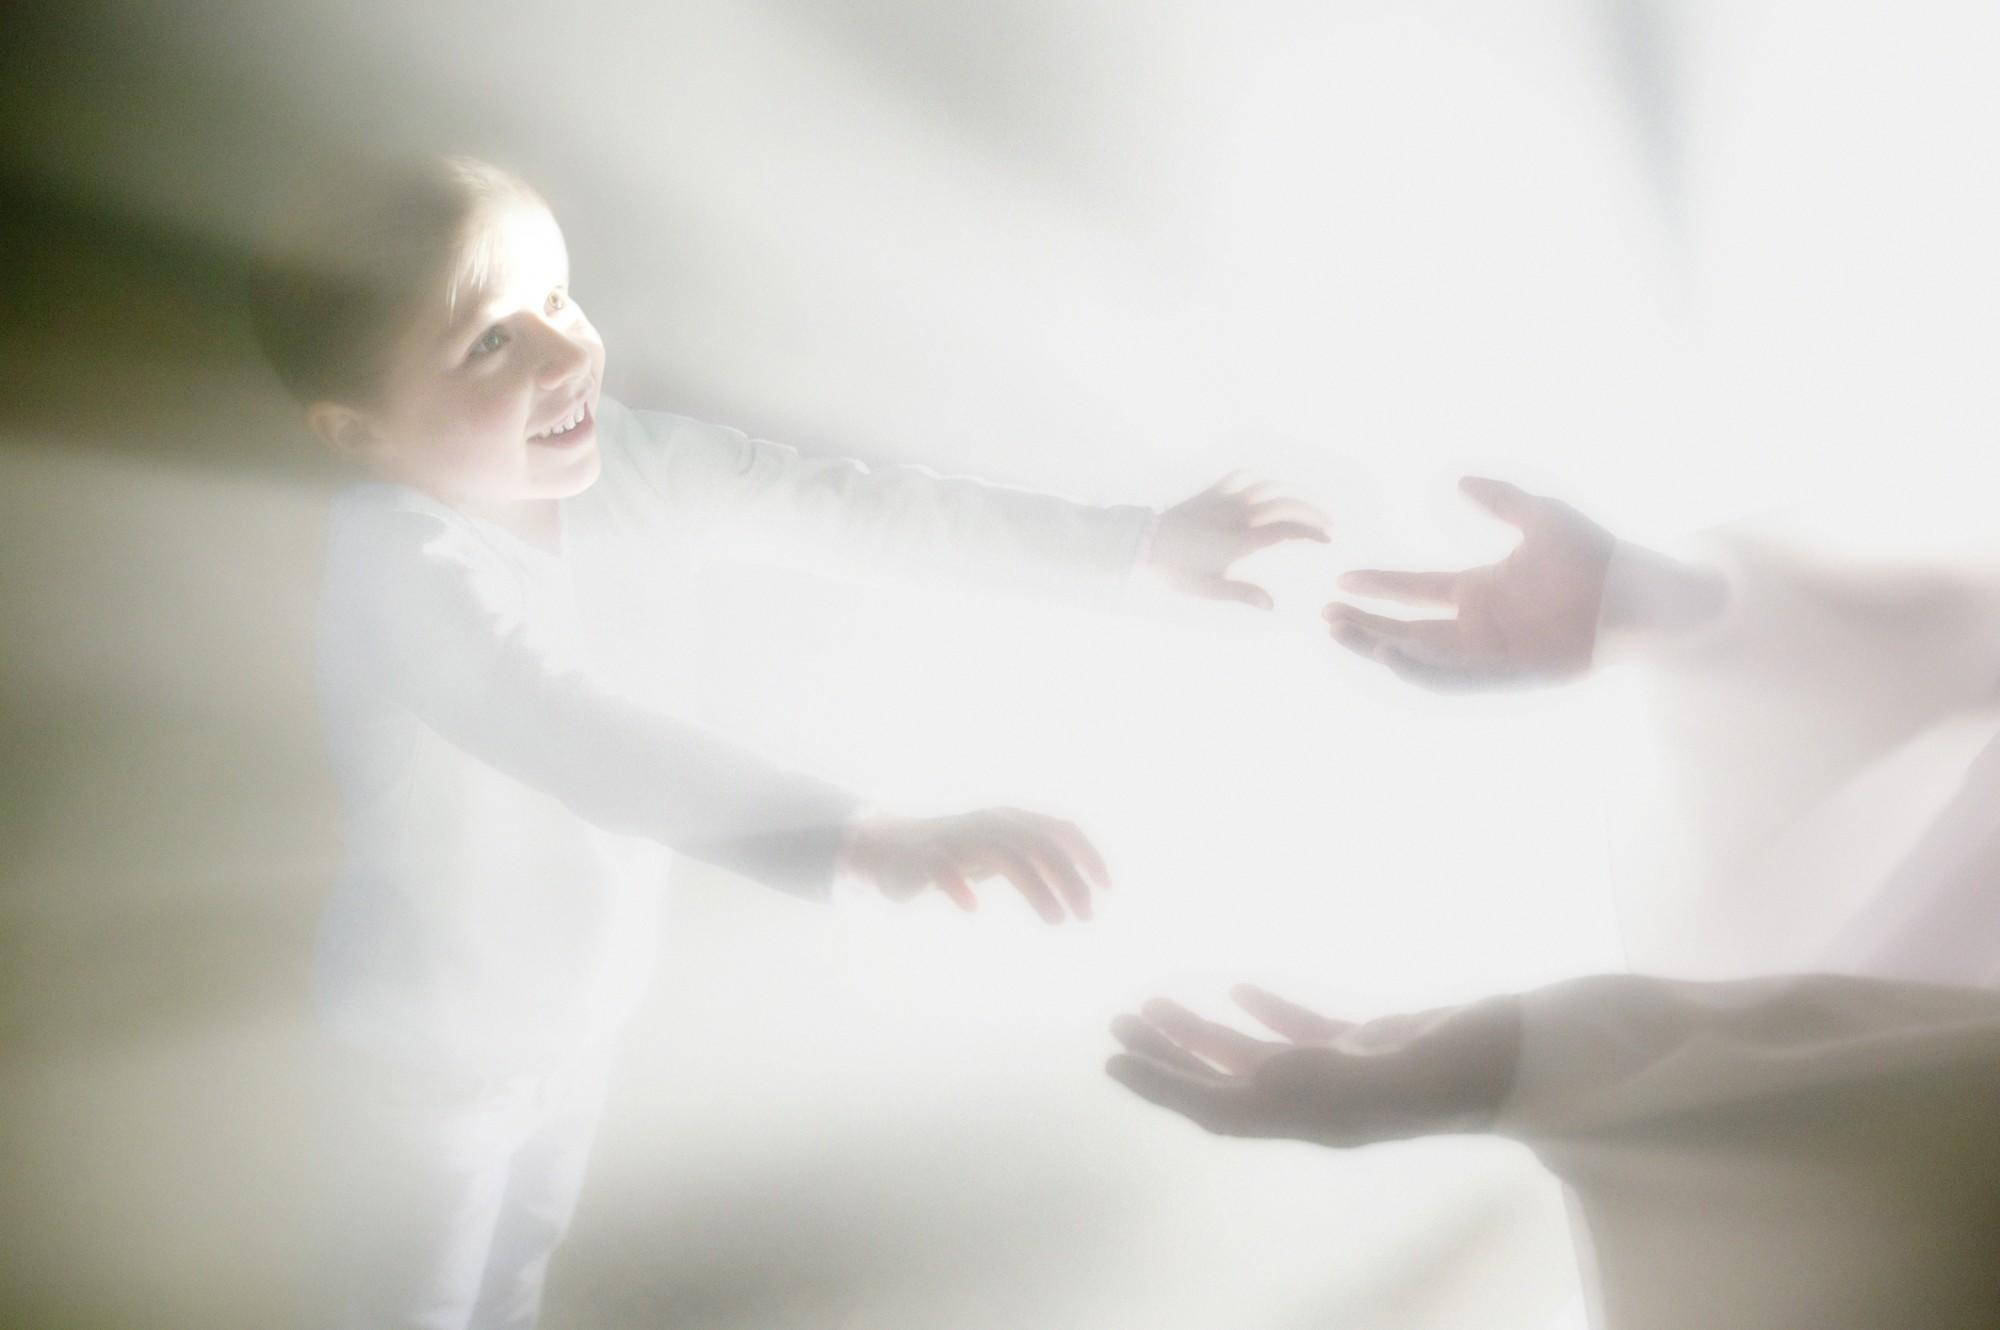 Boy reaches for hands of an angel